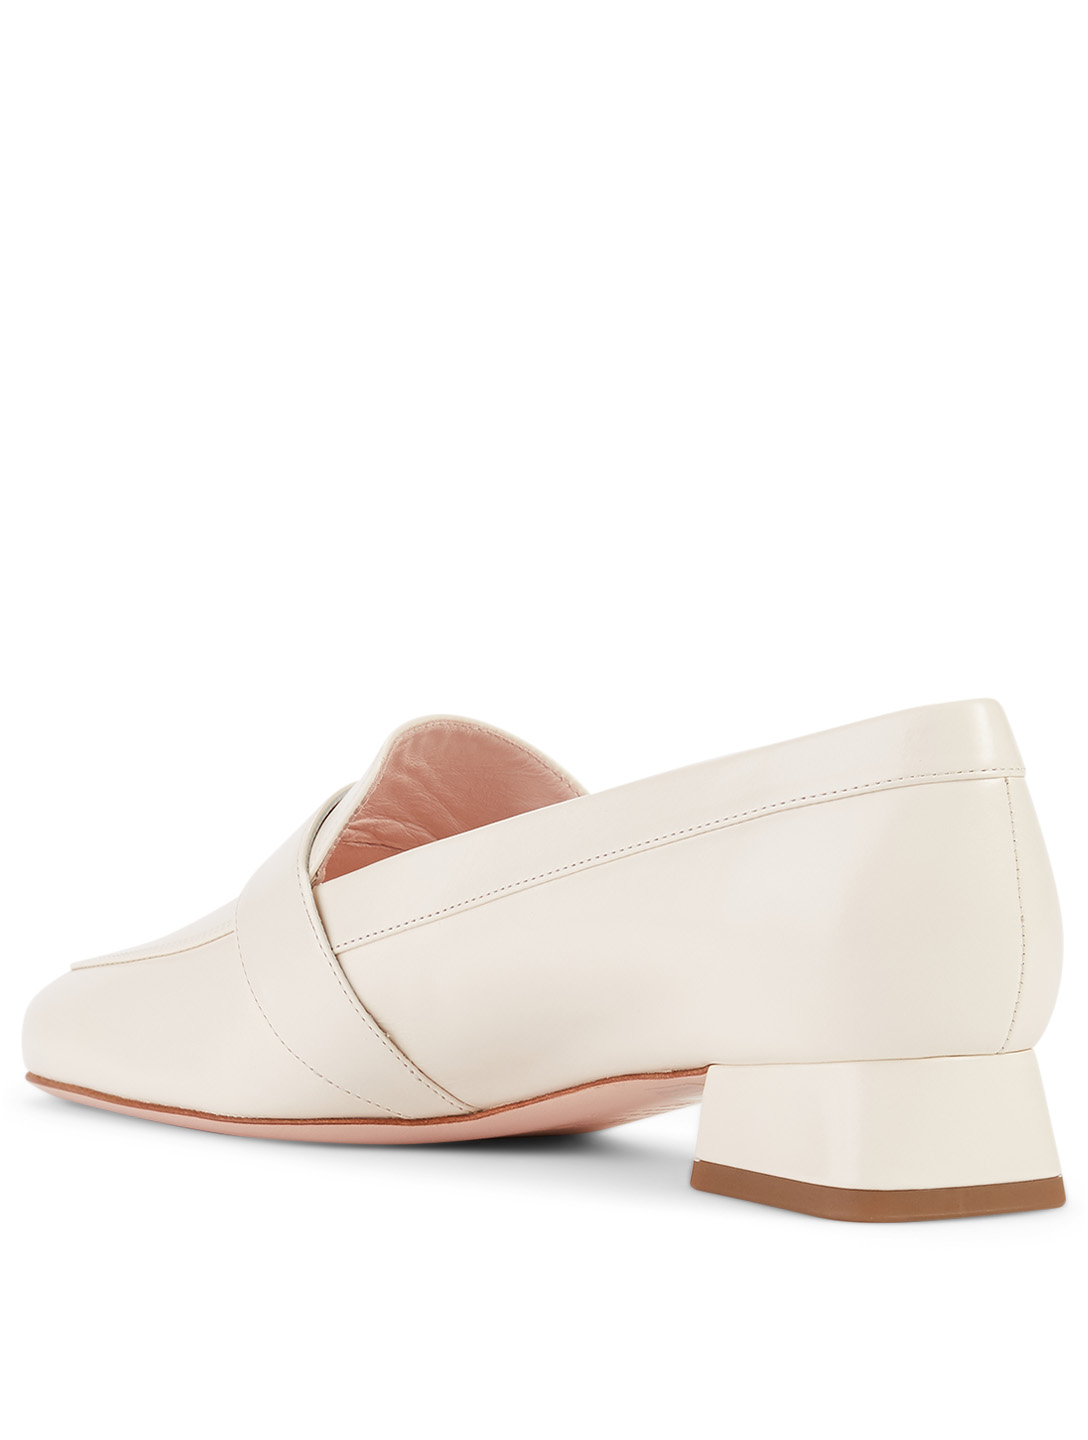 ROGER VIVIER Leather Loafers With RV Mini Buckle Women's White